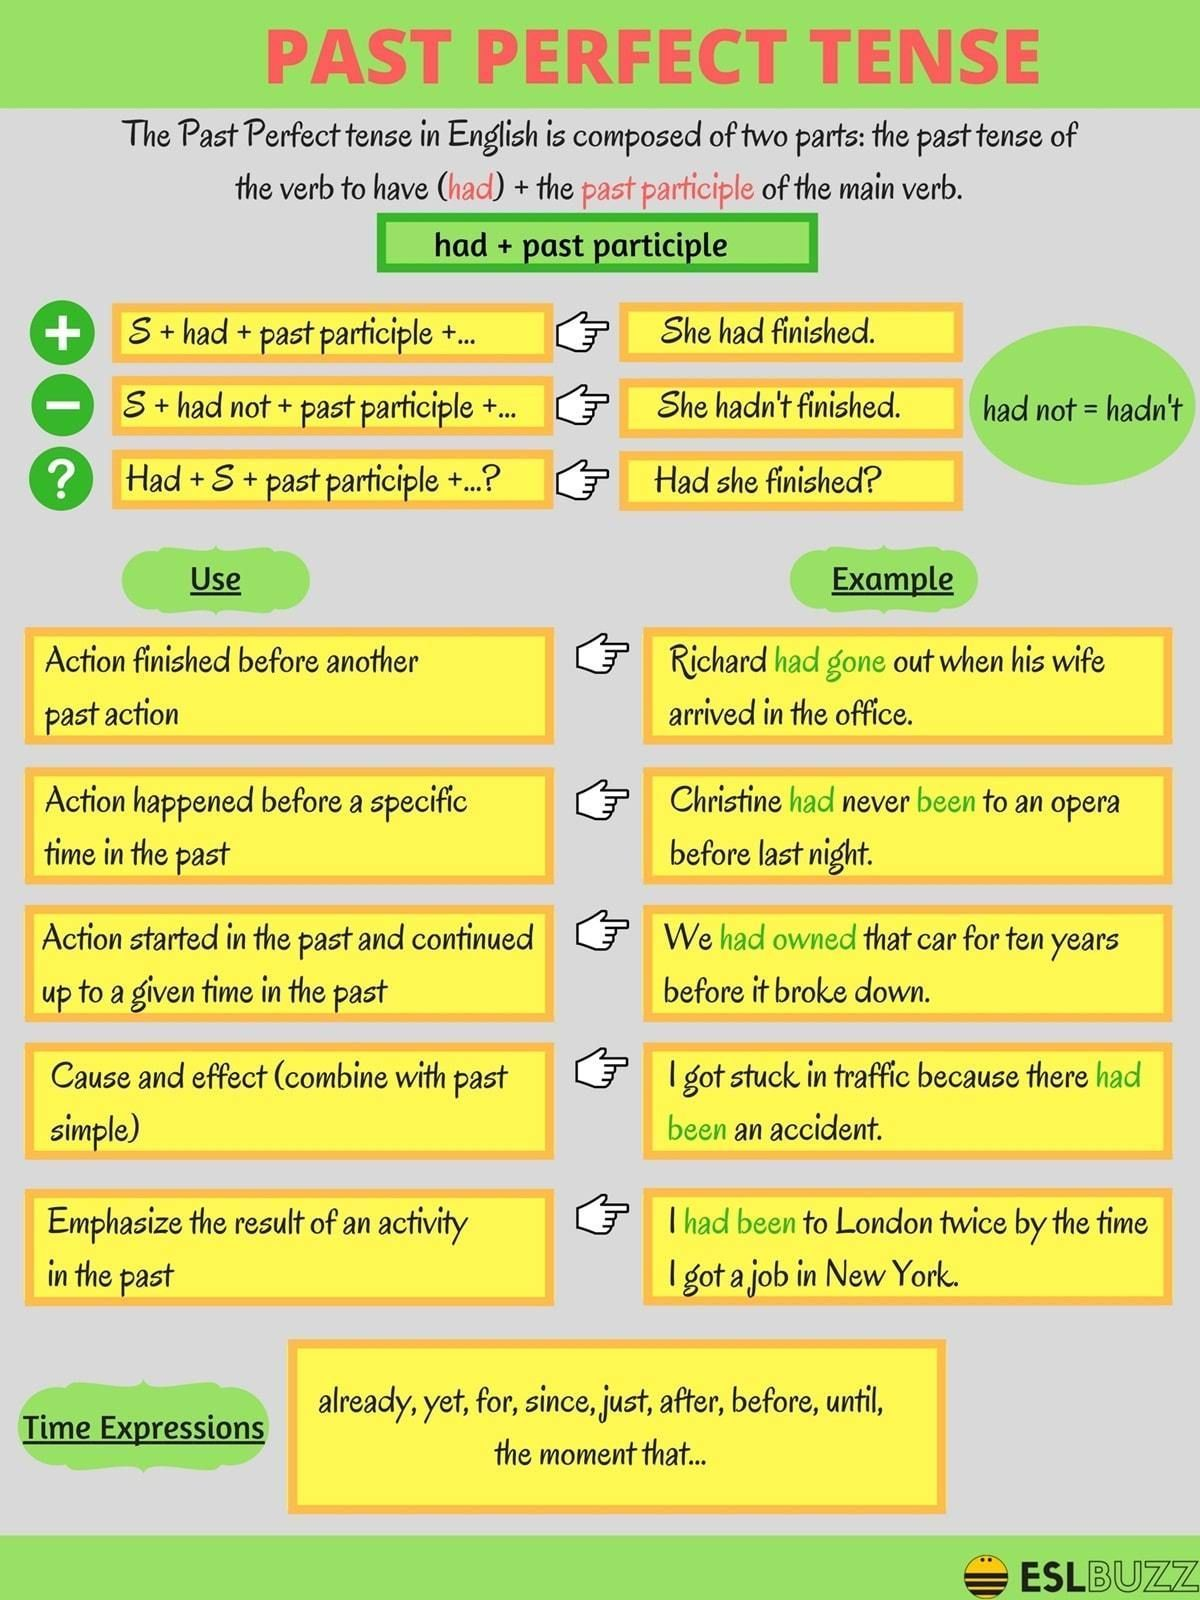 Grammar The Past Perfect Tense In English